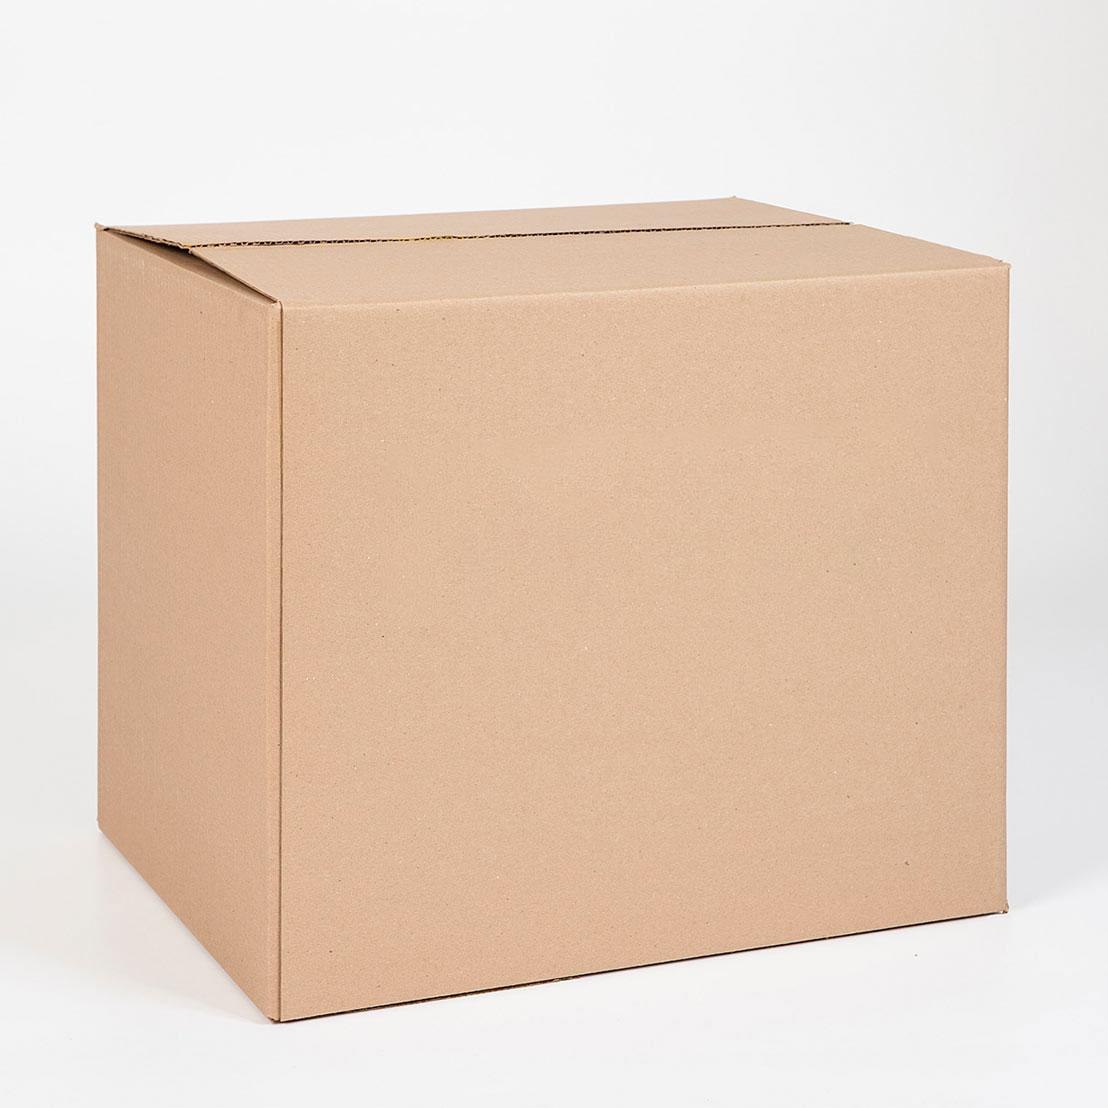 TVL 6 Single Wall Cardboard Box